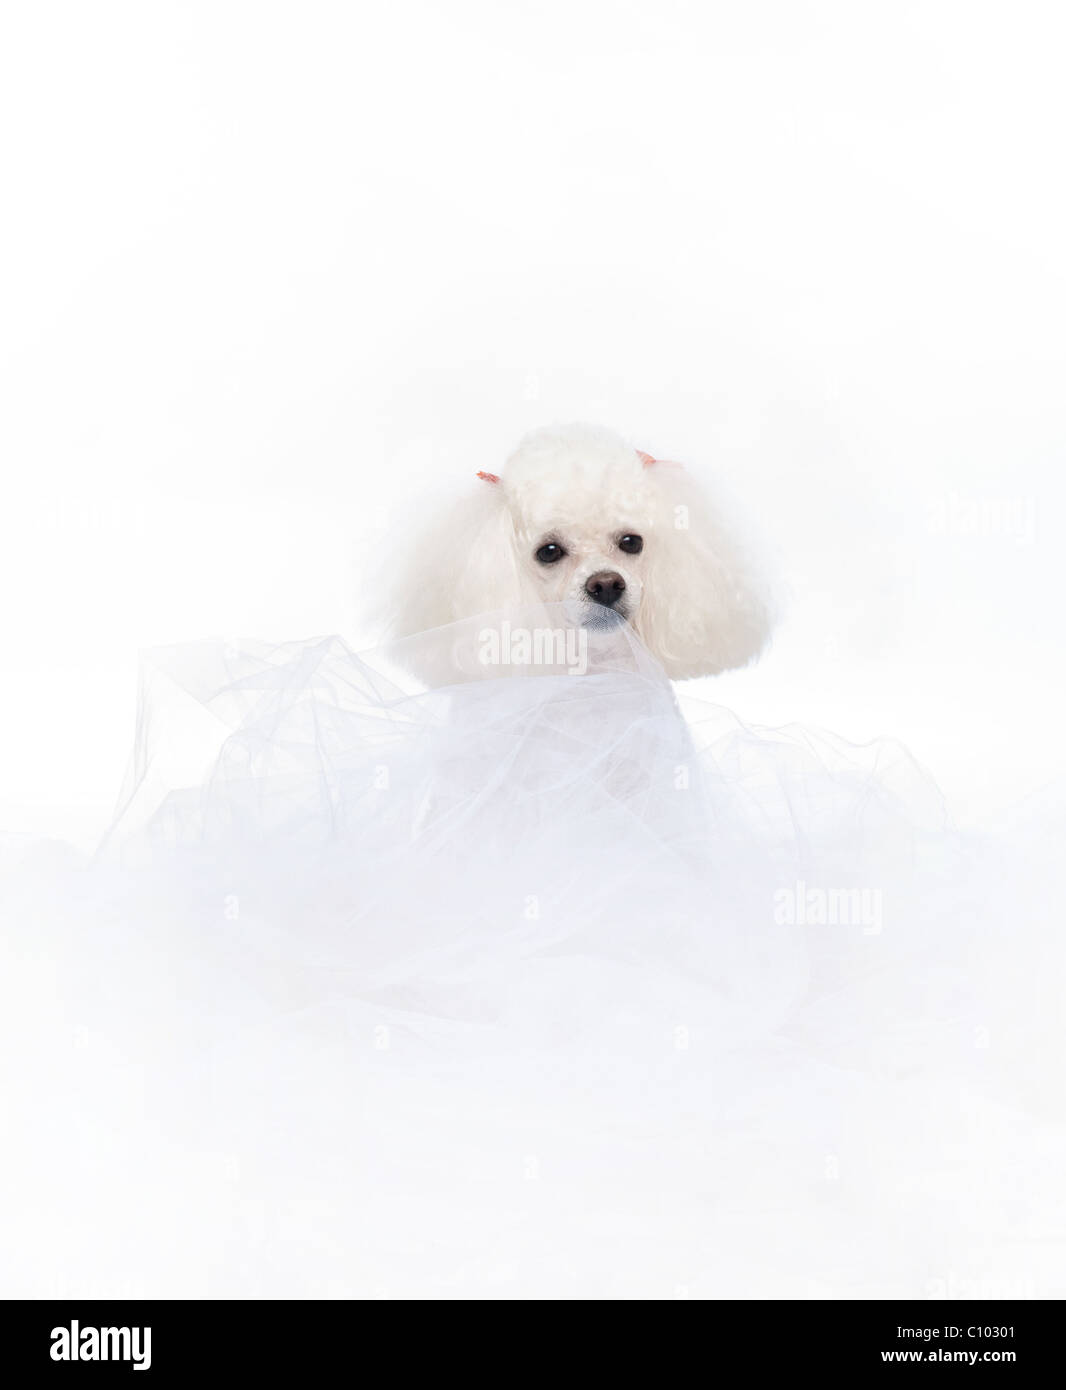 An adorable white toy poodle nestled in white tulle fabric. Shot in the studio isolated on a white seamless backdrop. - Stock Image